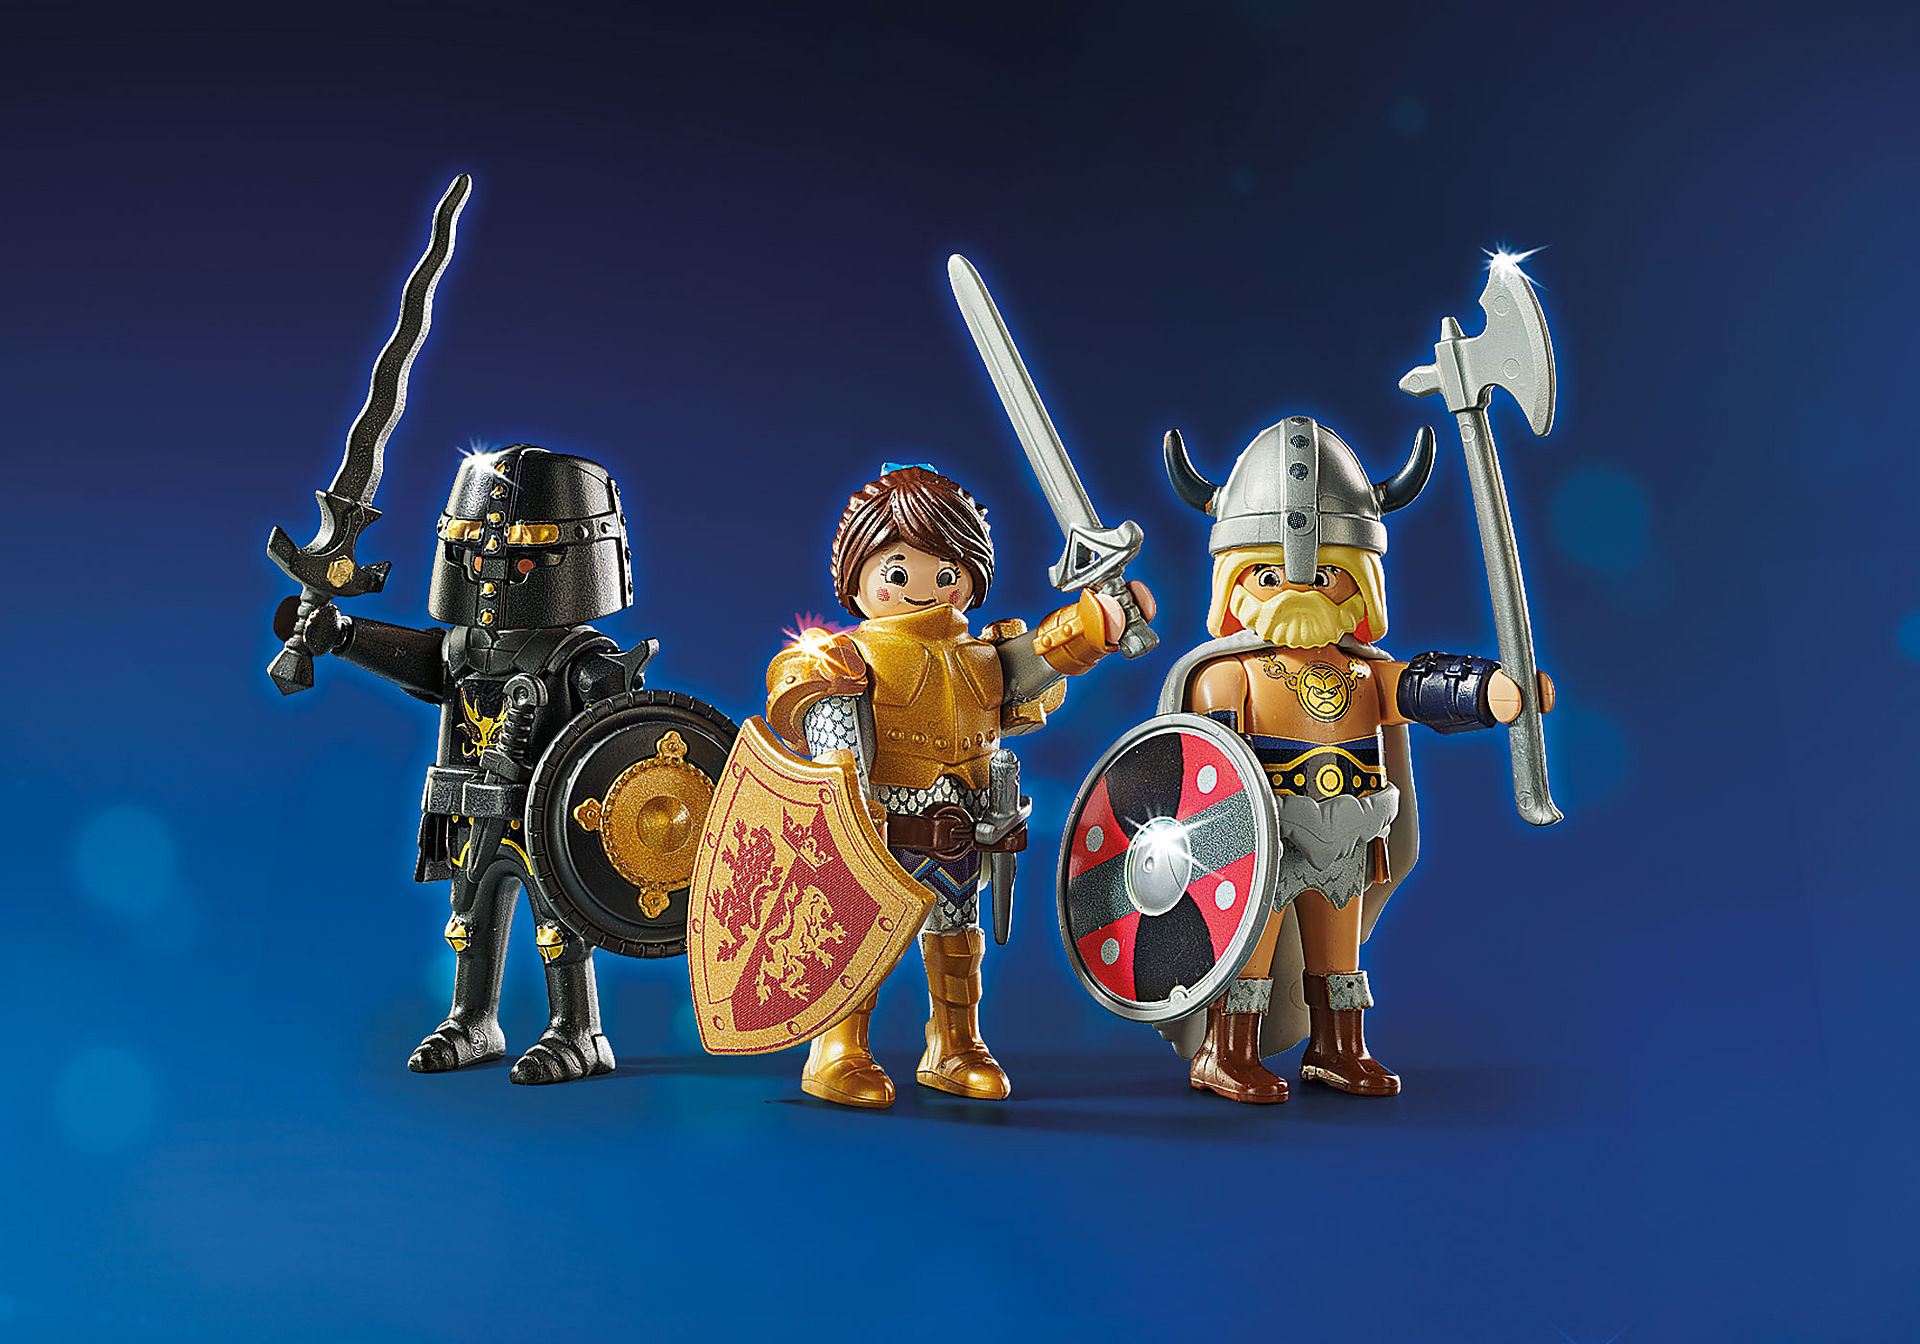 http://media.playmobil.com/i/playmobil/70076_product_extra1/PLAYMOBIL:THE MOVIE Emperor Maximus in the Colosseum